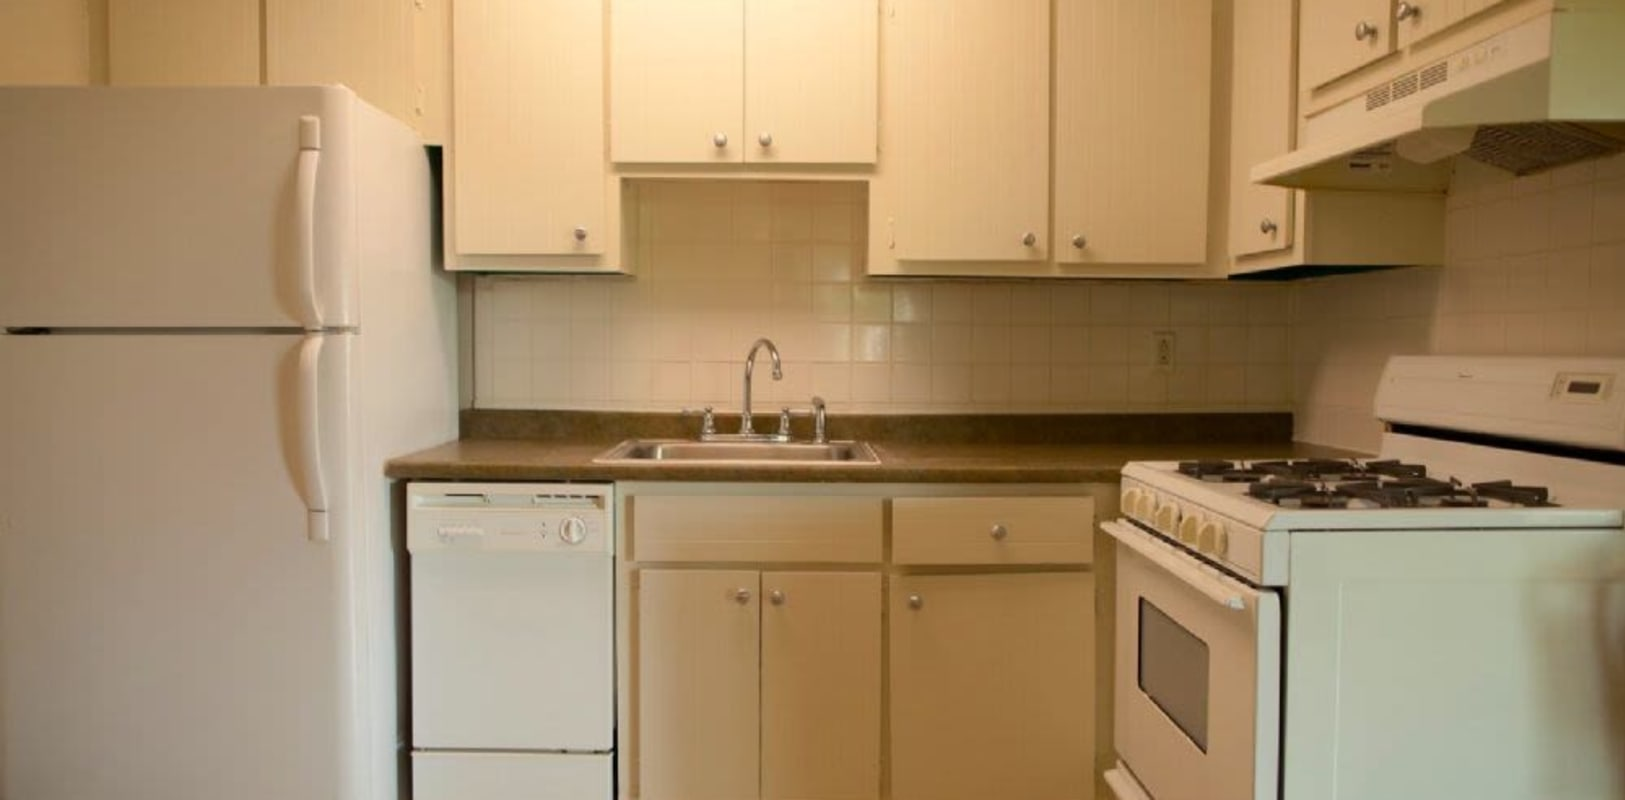 Fully equipped kitchen at Glen Wall Heights in Wall Township, New Jersey